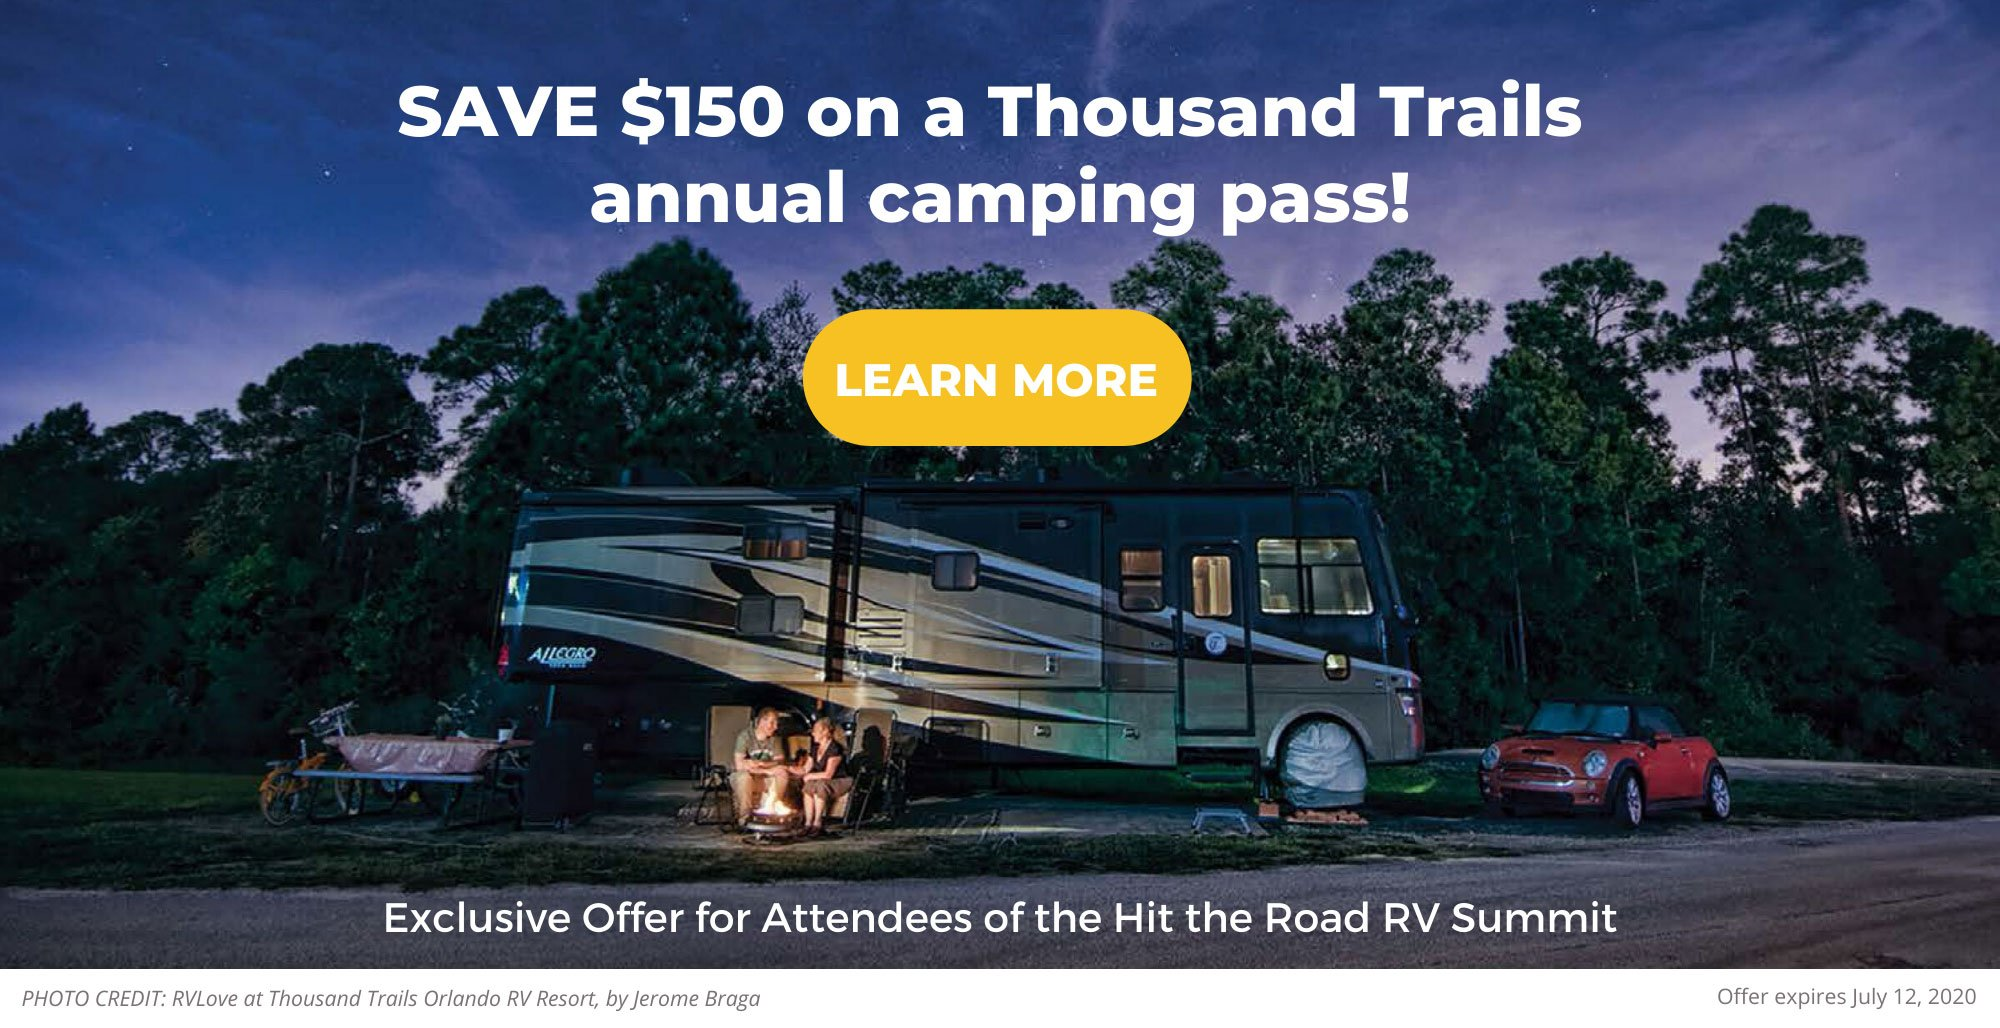 night time shot thousand trails orlando save $150 on thousand trails annual camping pass